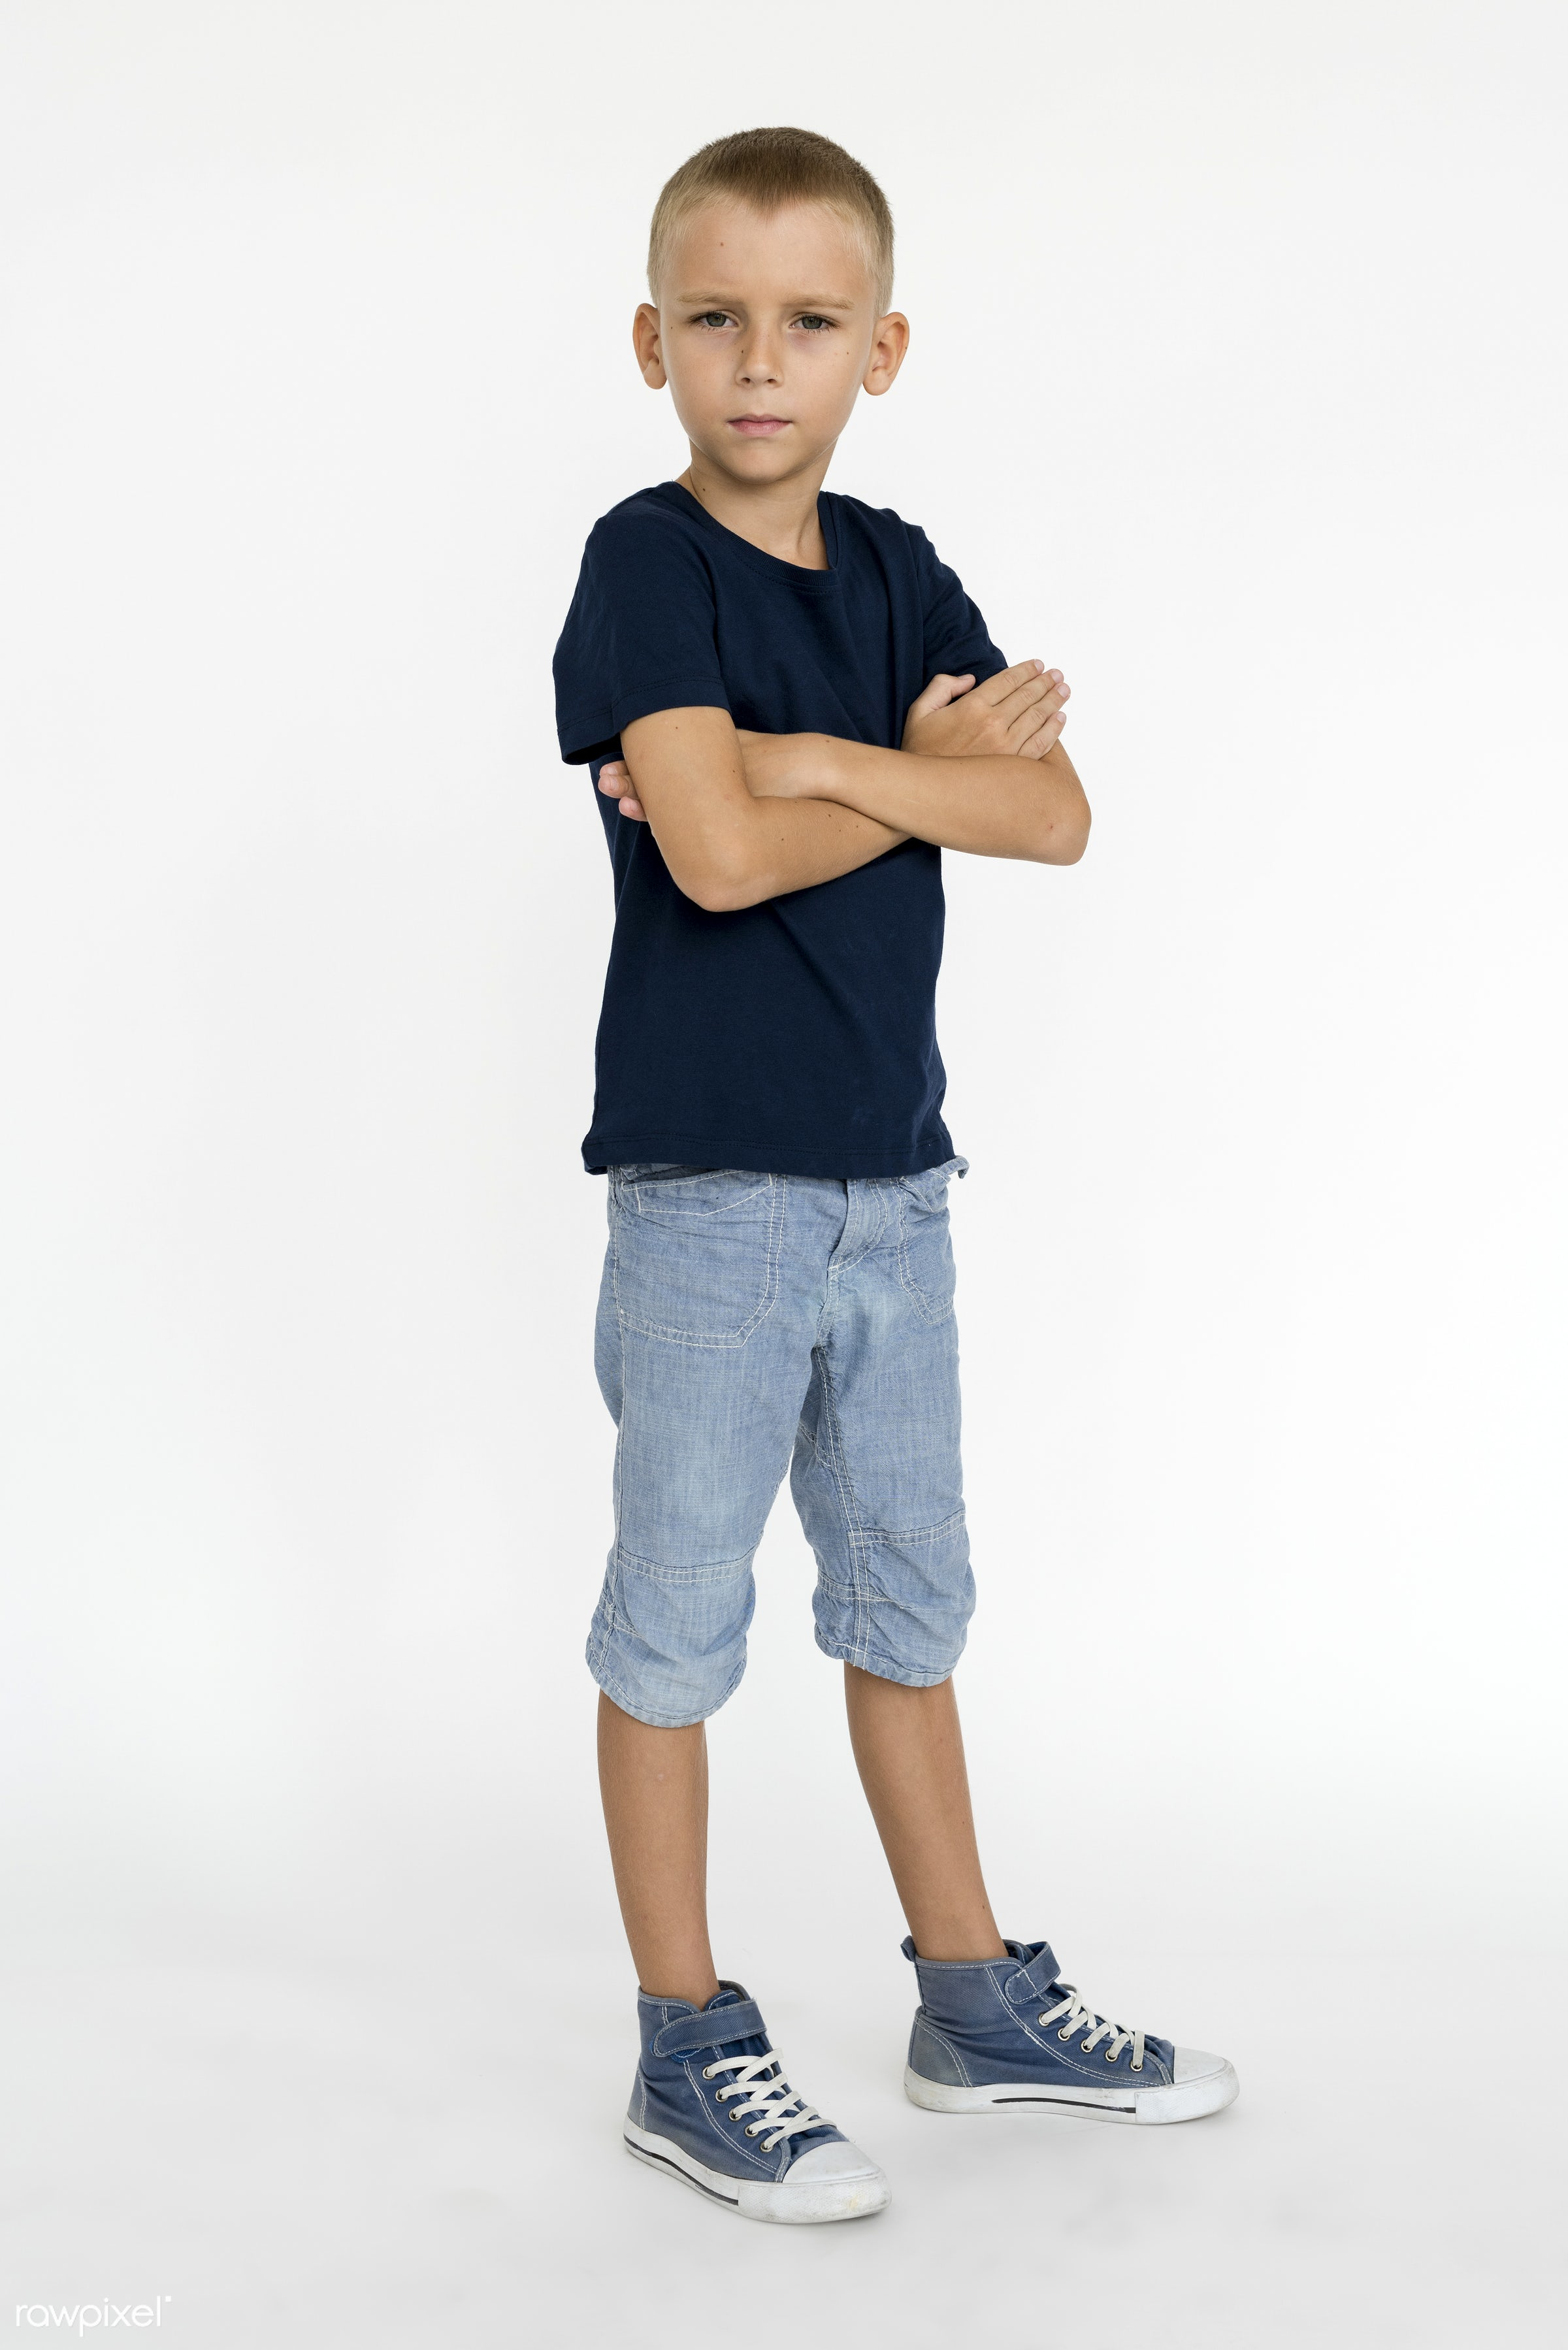 expression, studio, person, isolated on white, little, people, kid, caucasian, child, casual, serious, man, isolated, guy,...